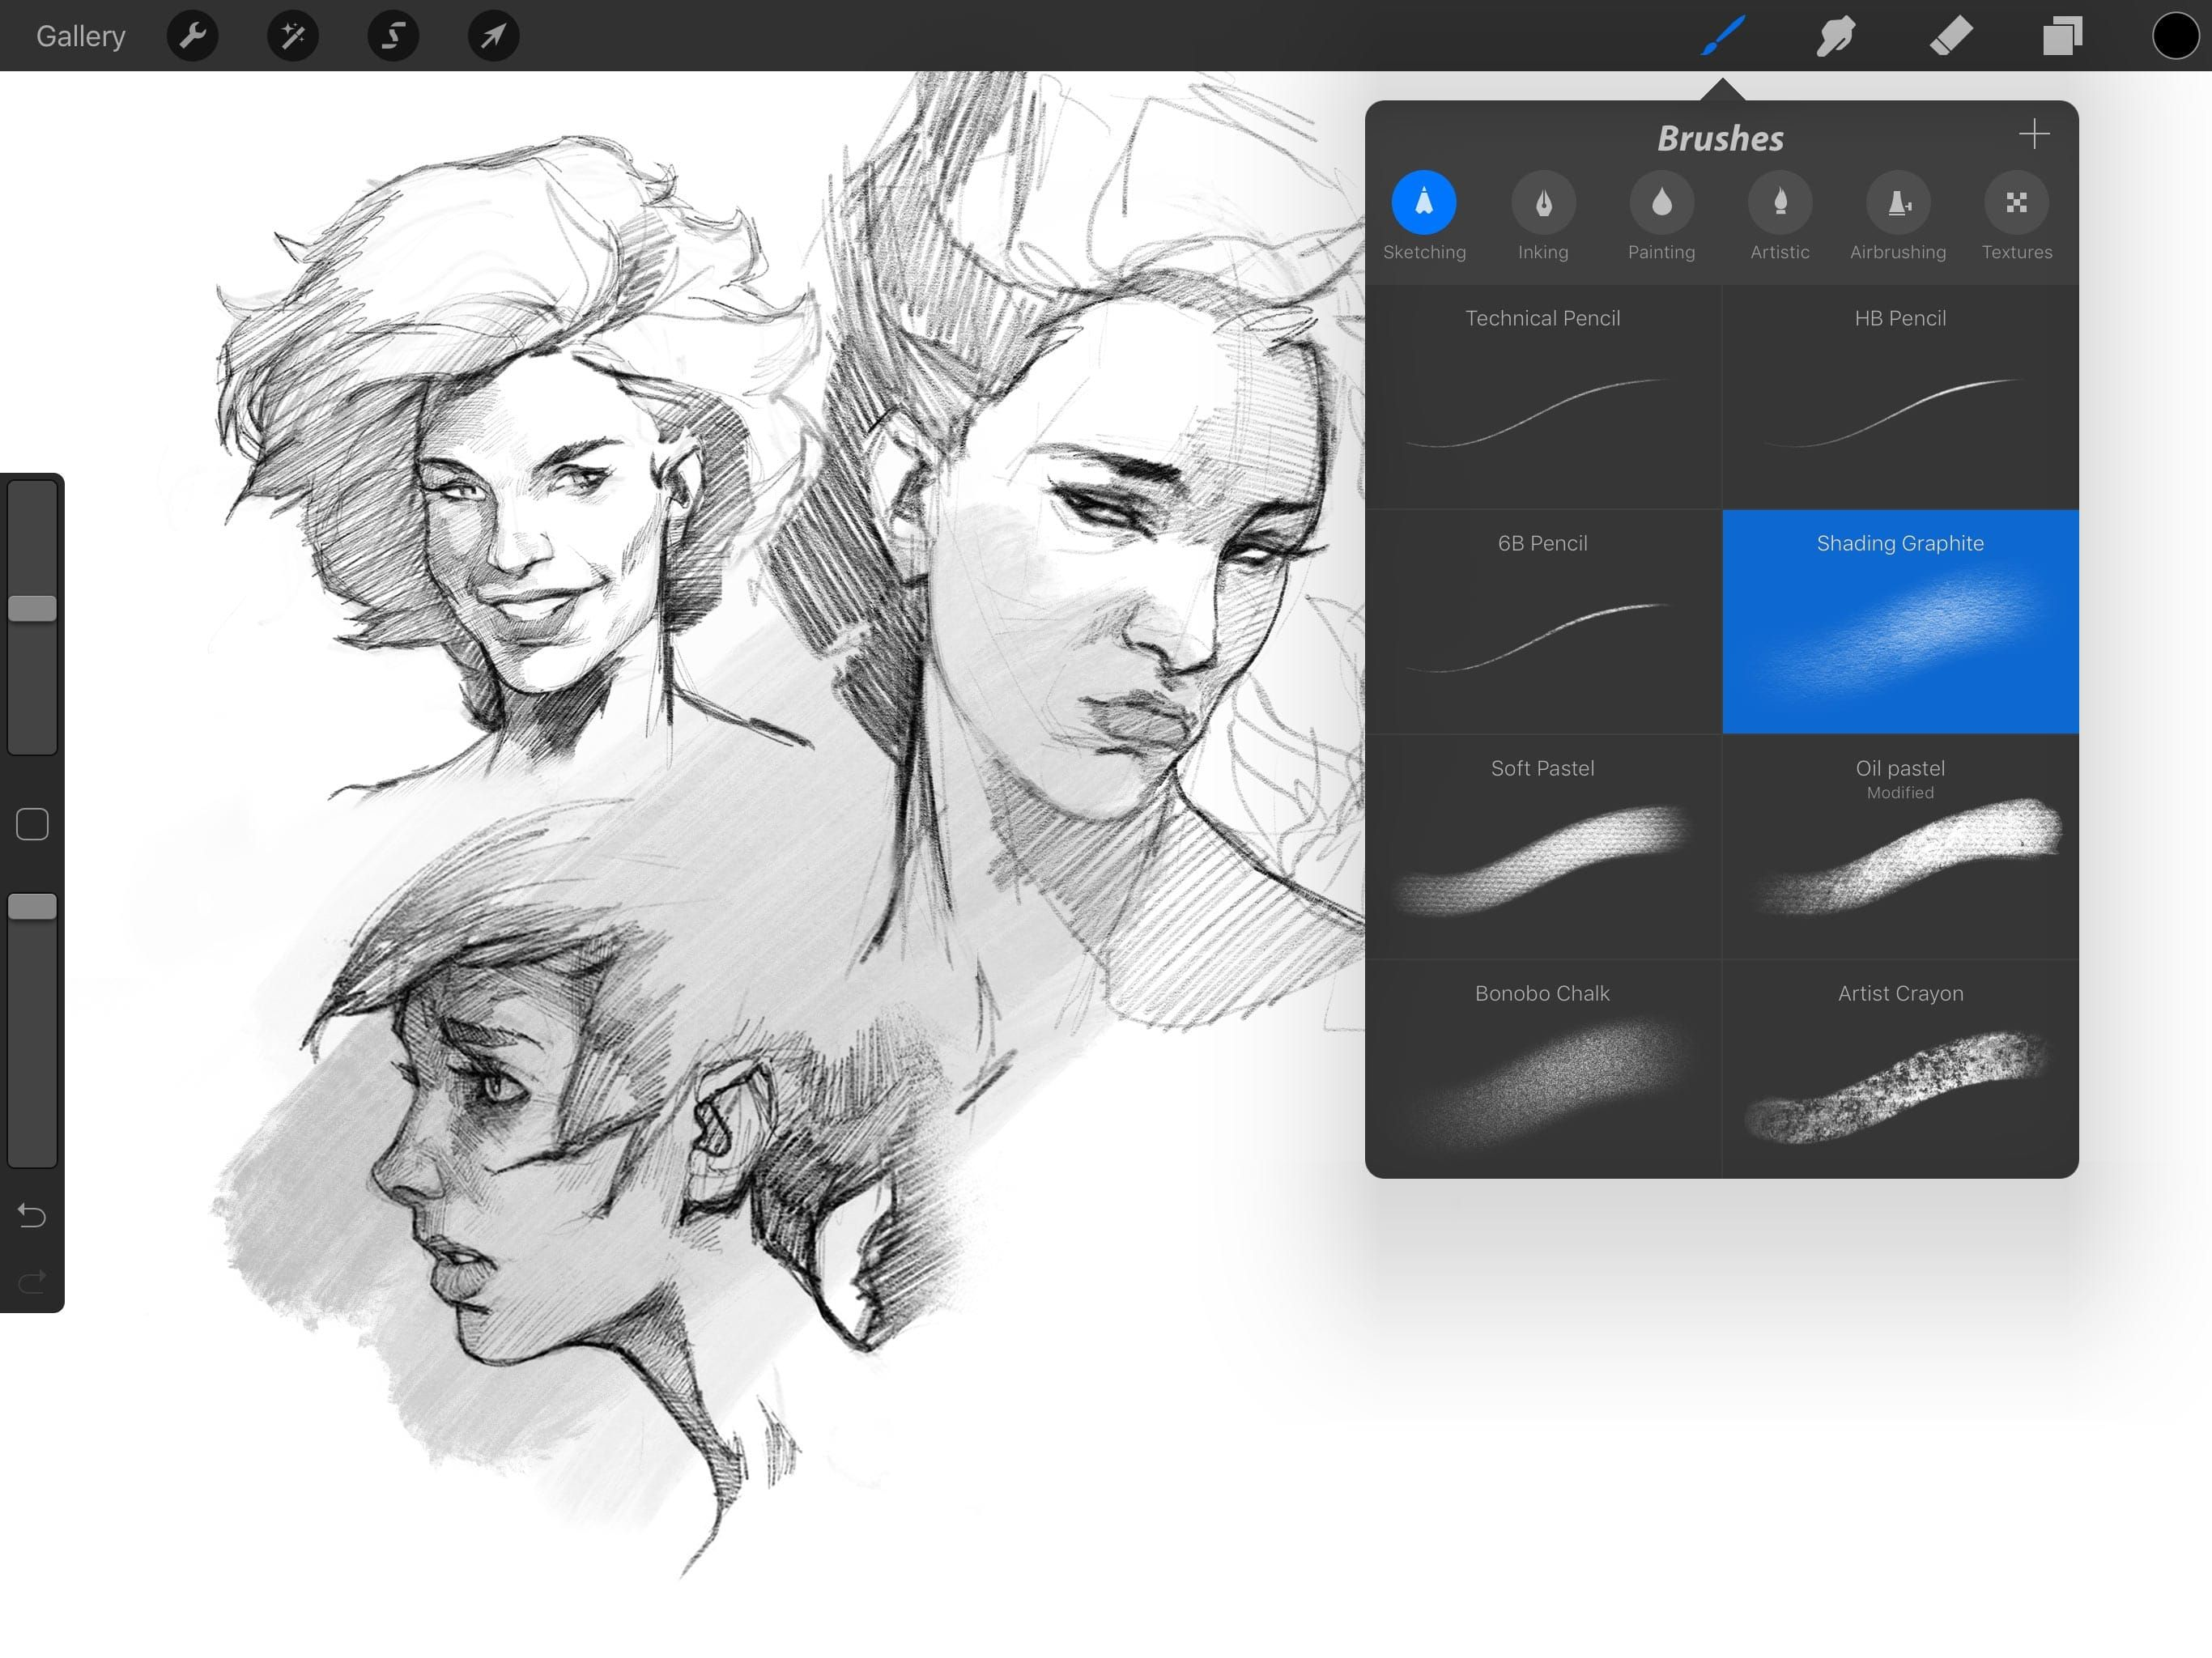 33 of the best procreate brushes in 2020 best procreate